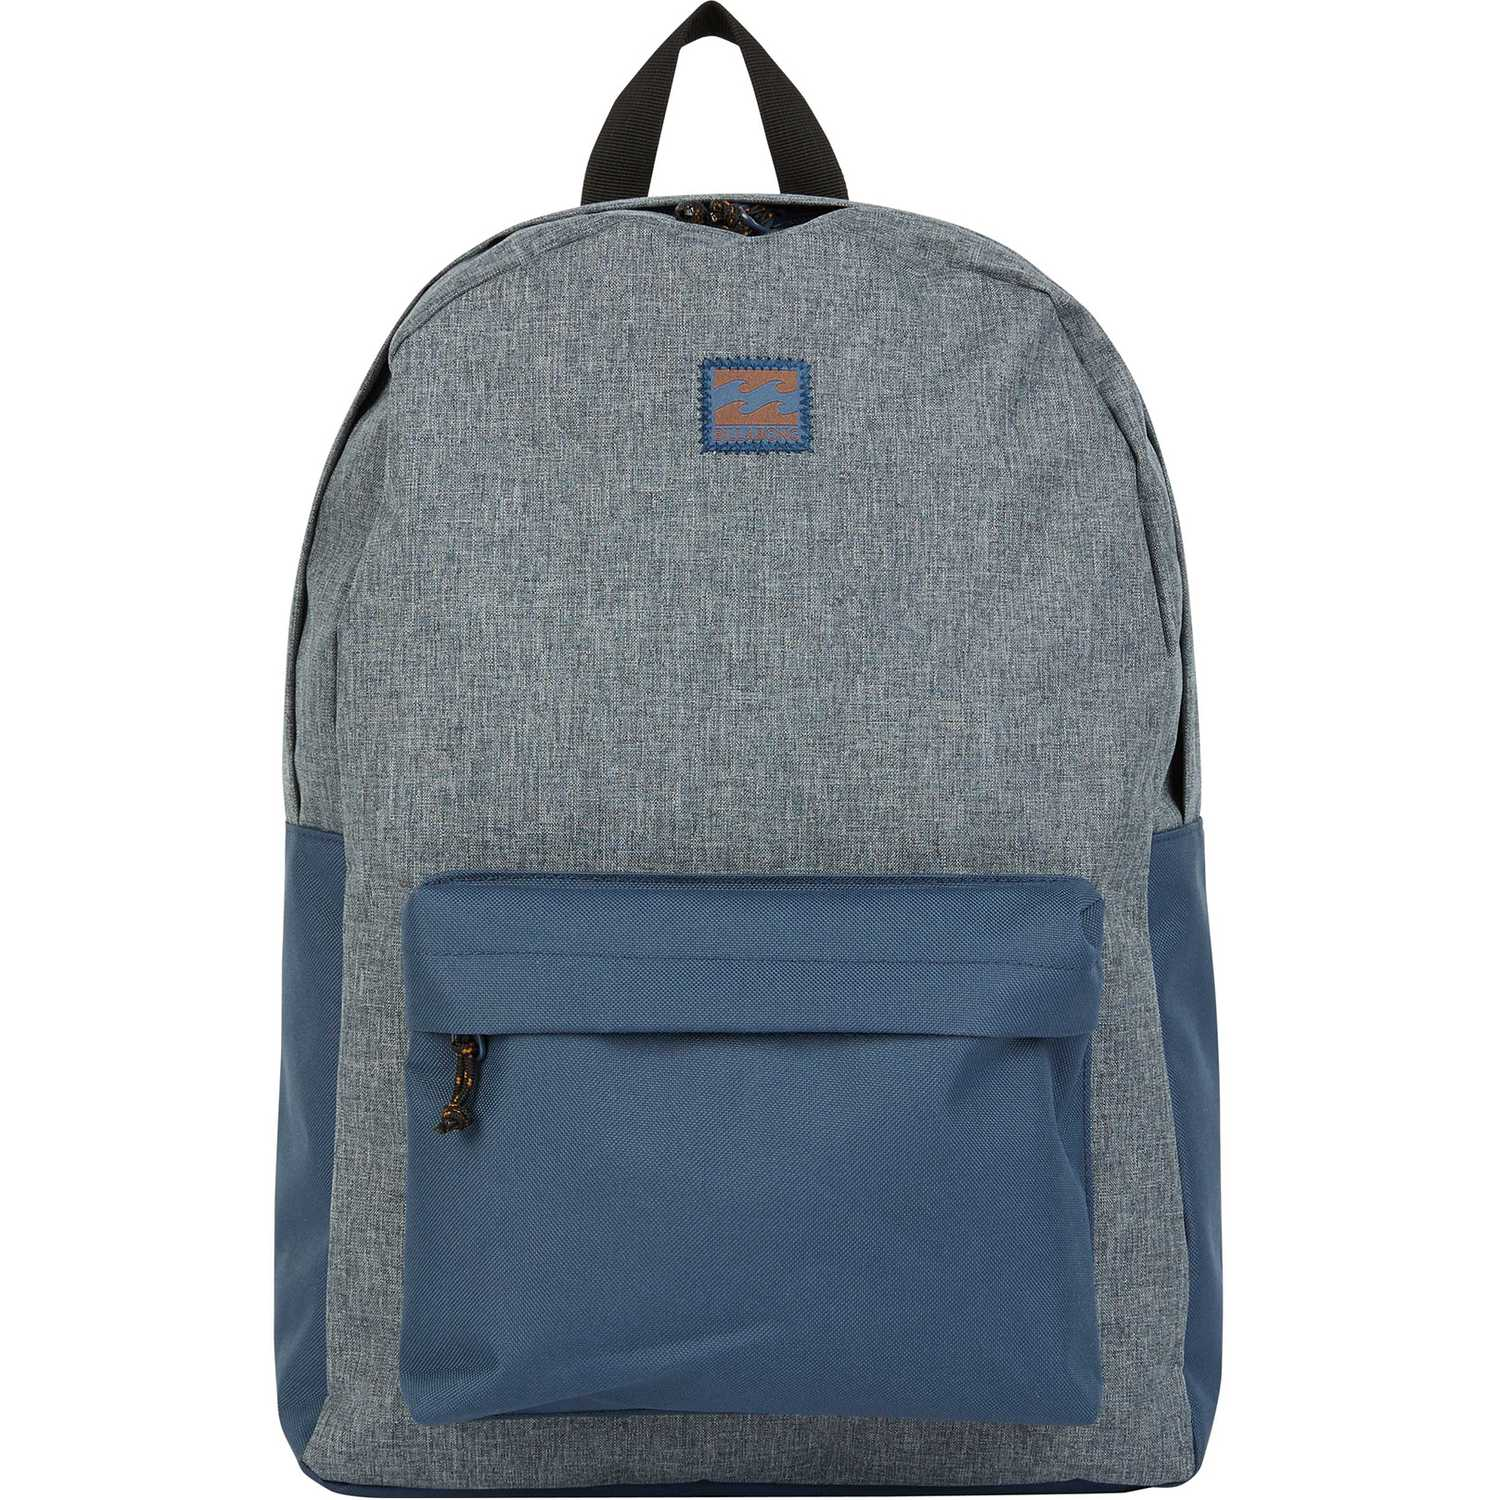 Billabong All Day Pack Gris / acero Mochilas multipropósitos